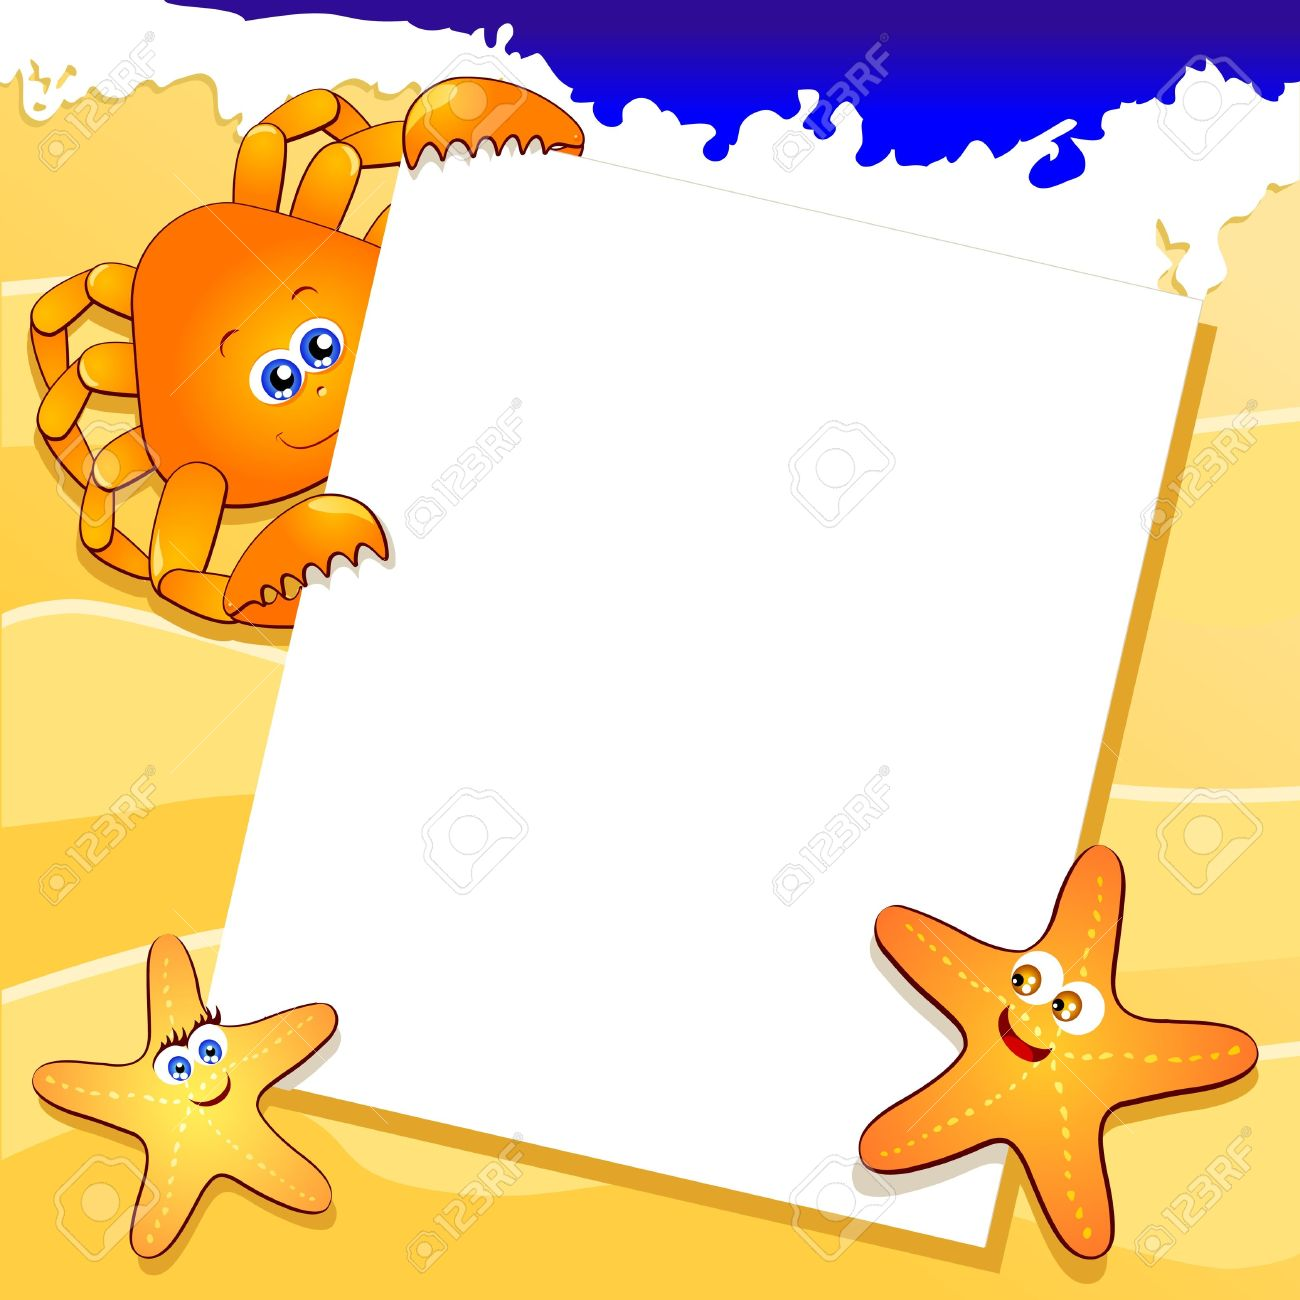 Free Beach Clipart Backgrounds.